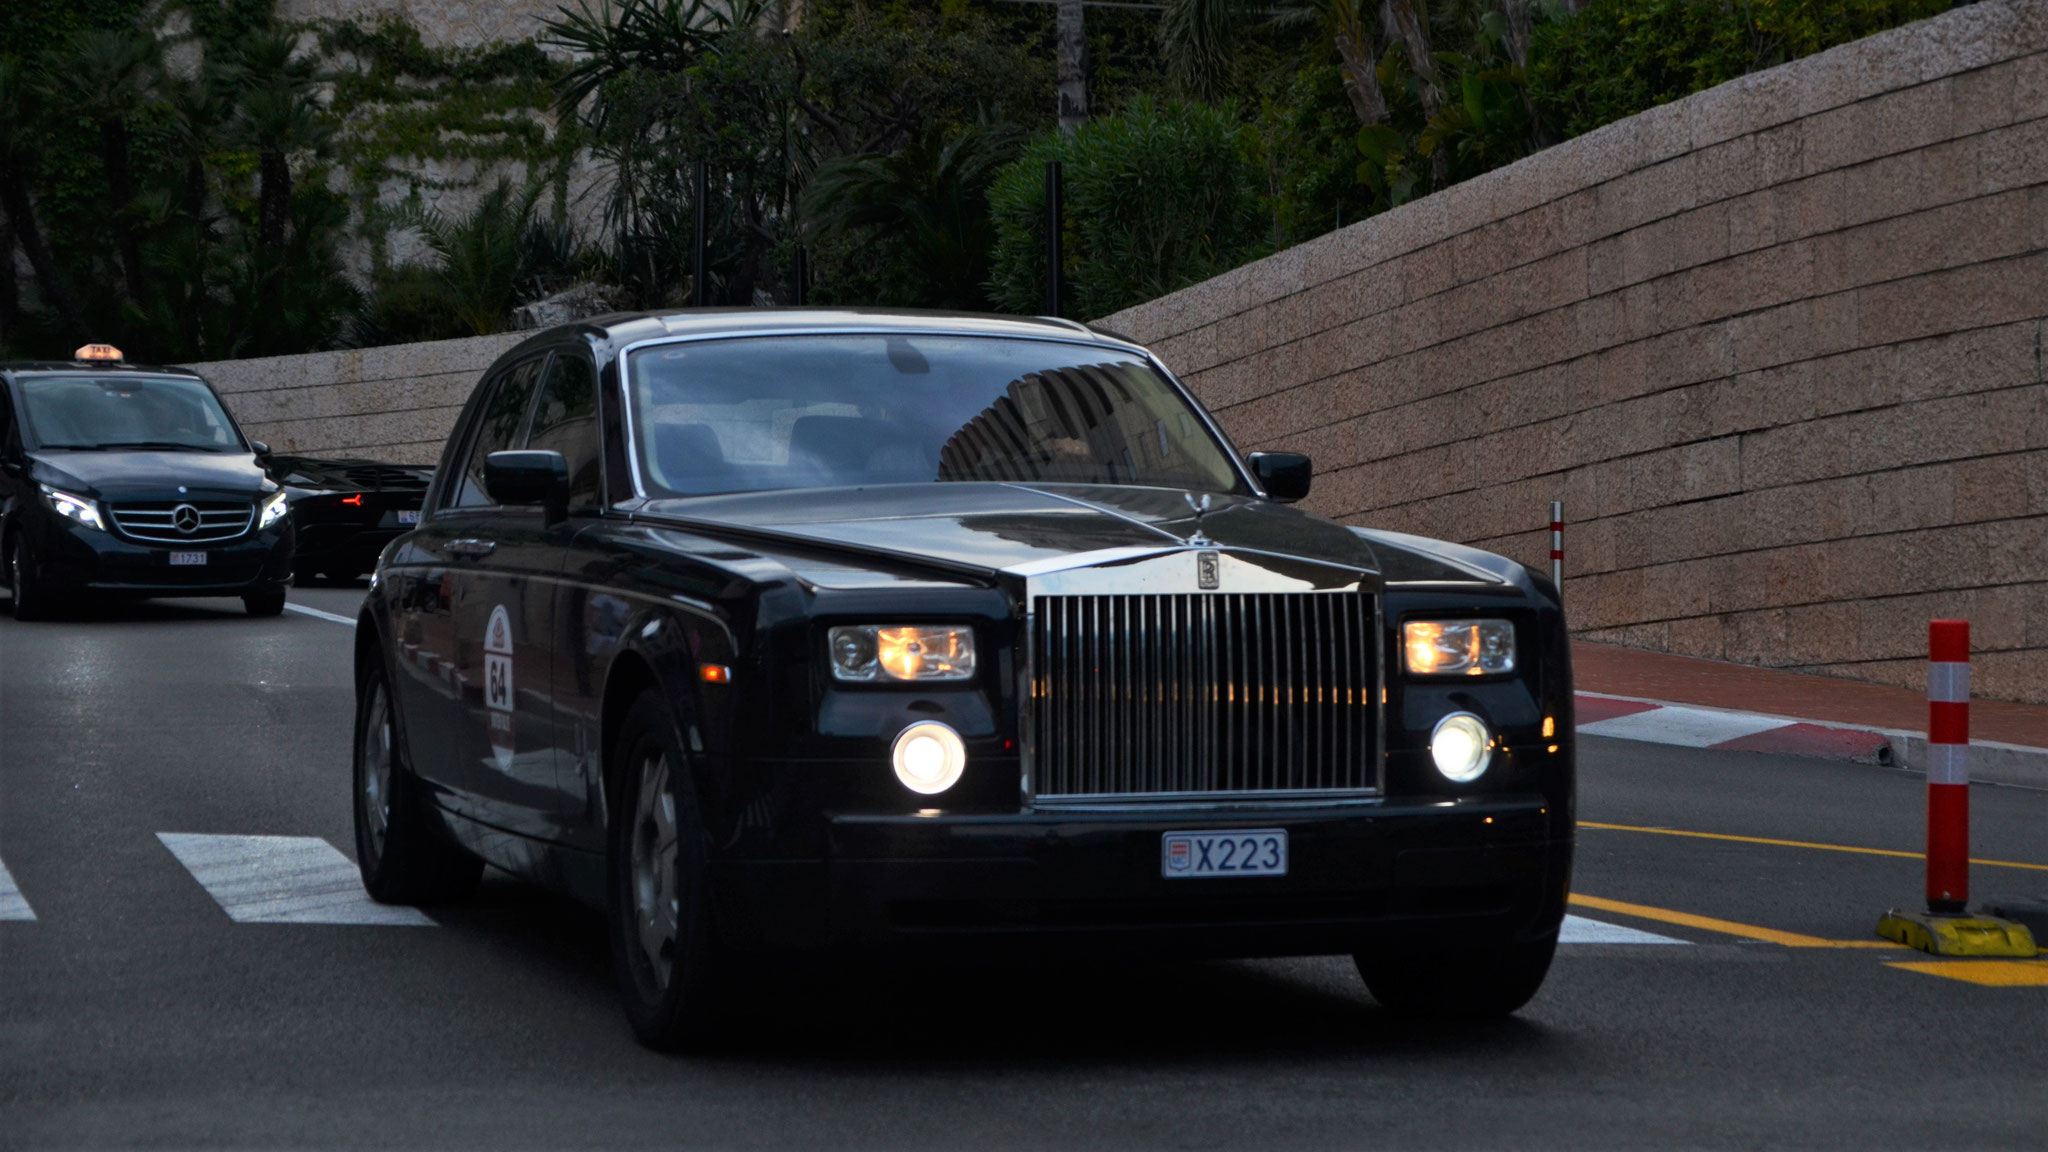 Rolls Royce Phantom - X223 (MC)